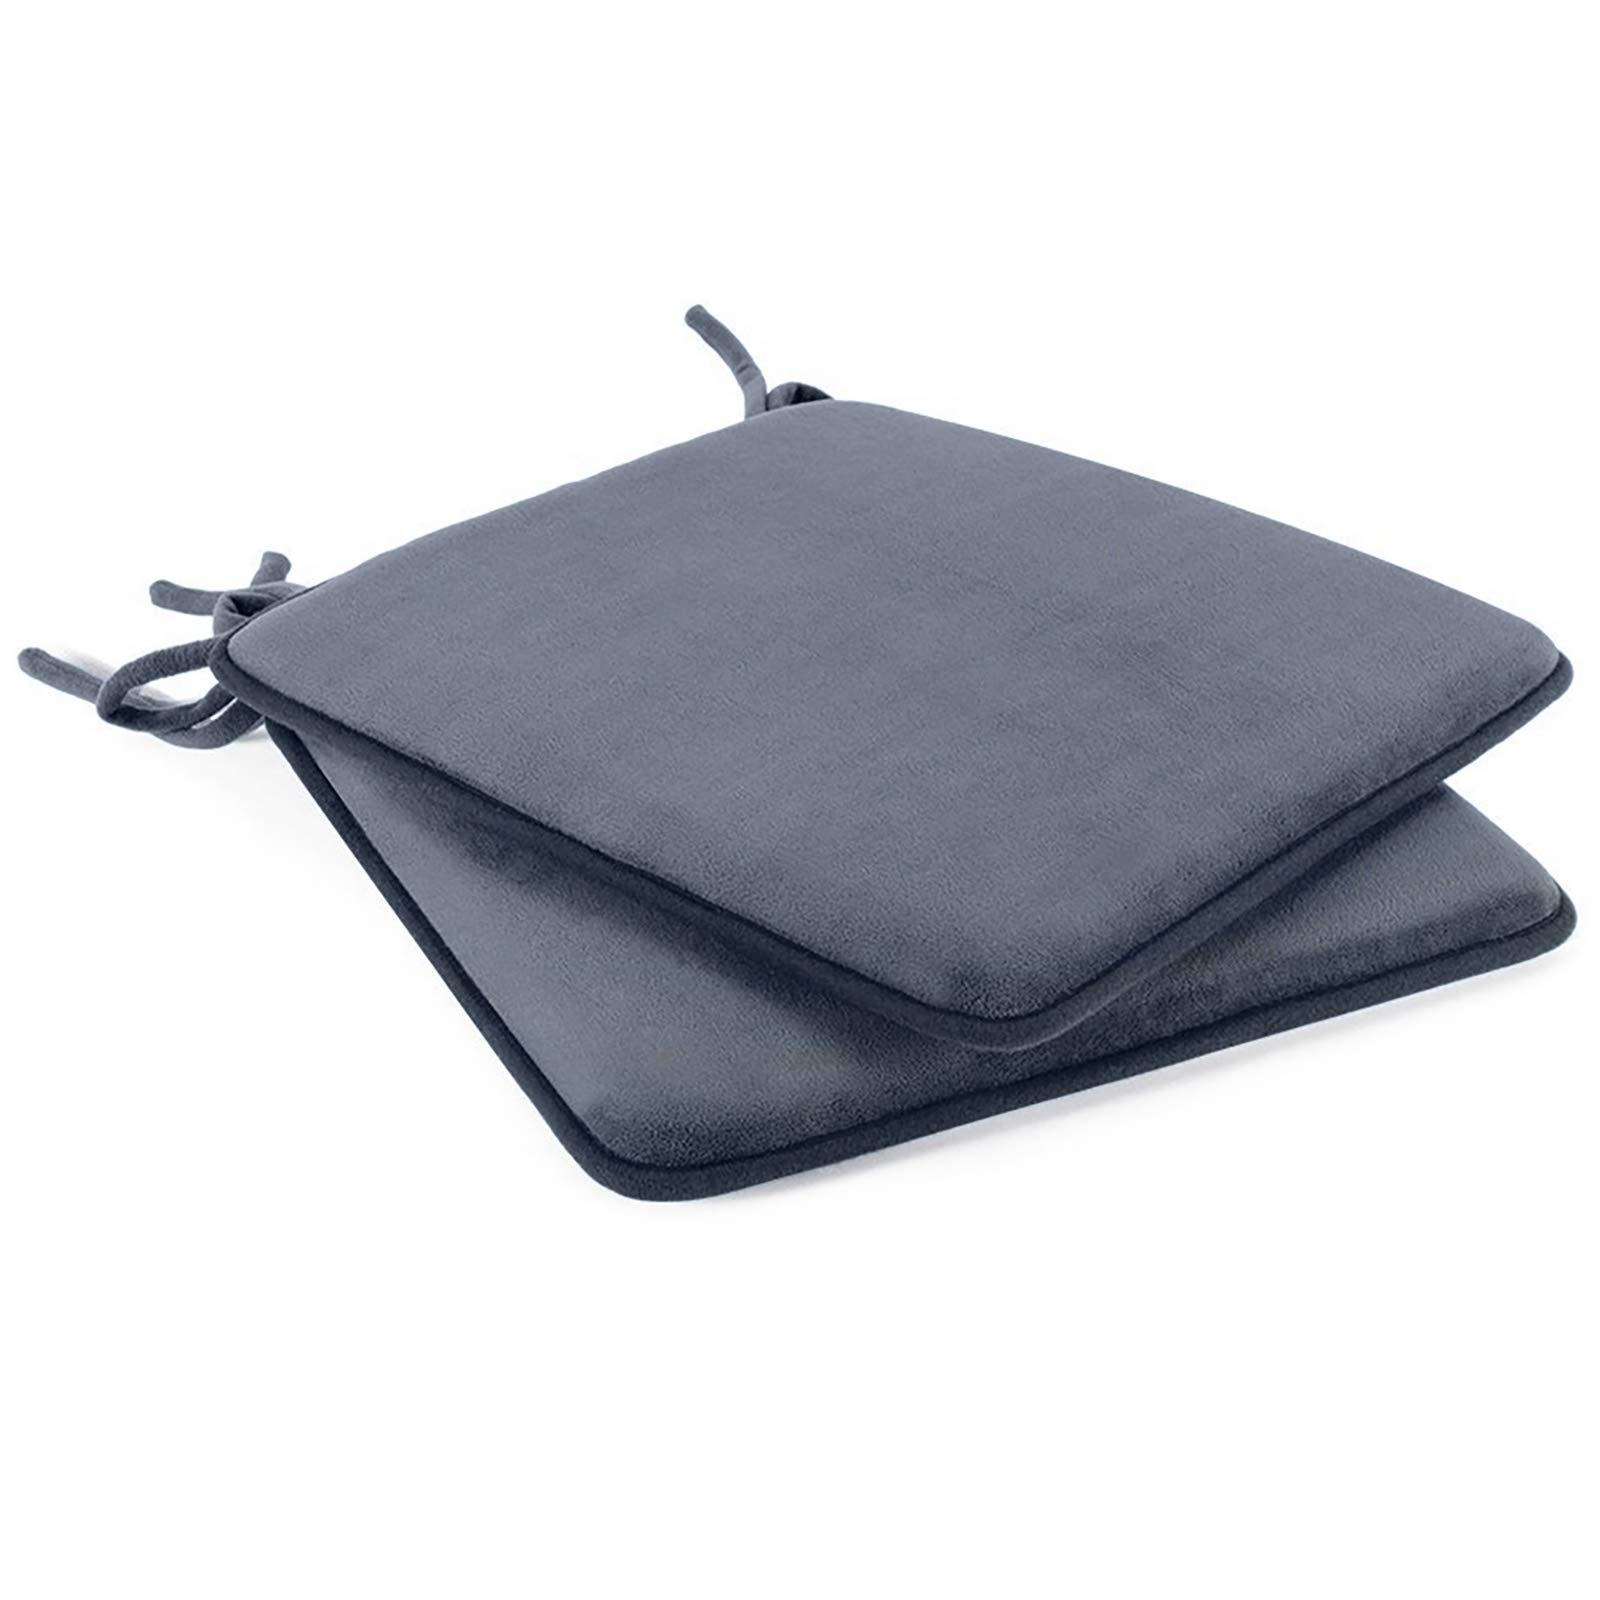 Dining Chair Pads 2 Pack Non Slip Memory Foam Kitchen Chair Cushions Pads With Ties And Gripper Backing By Shinnwa 16 Square Velvet Gray Buy Online In Bahamas At Bahamas Desertcart Com Productid 67119671